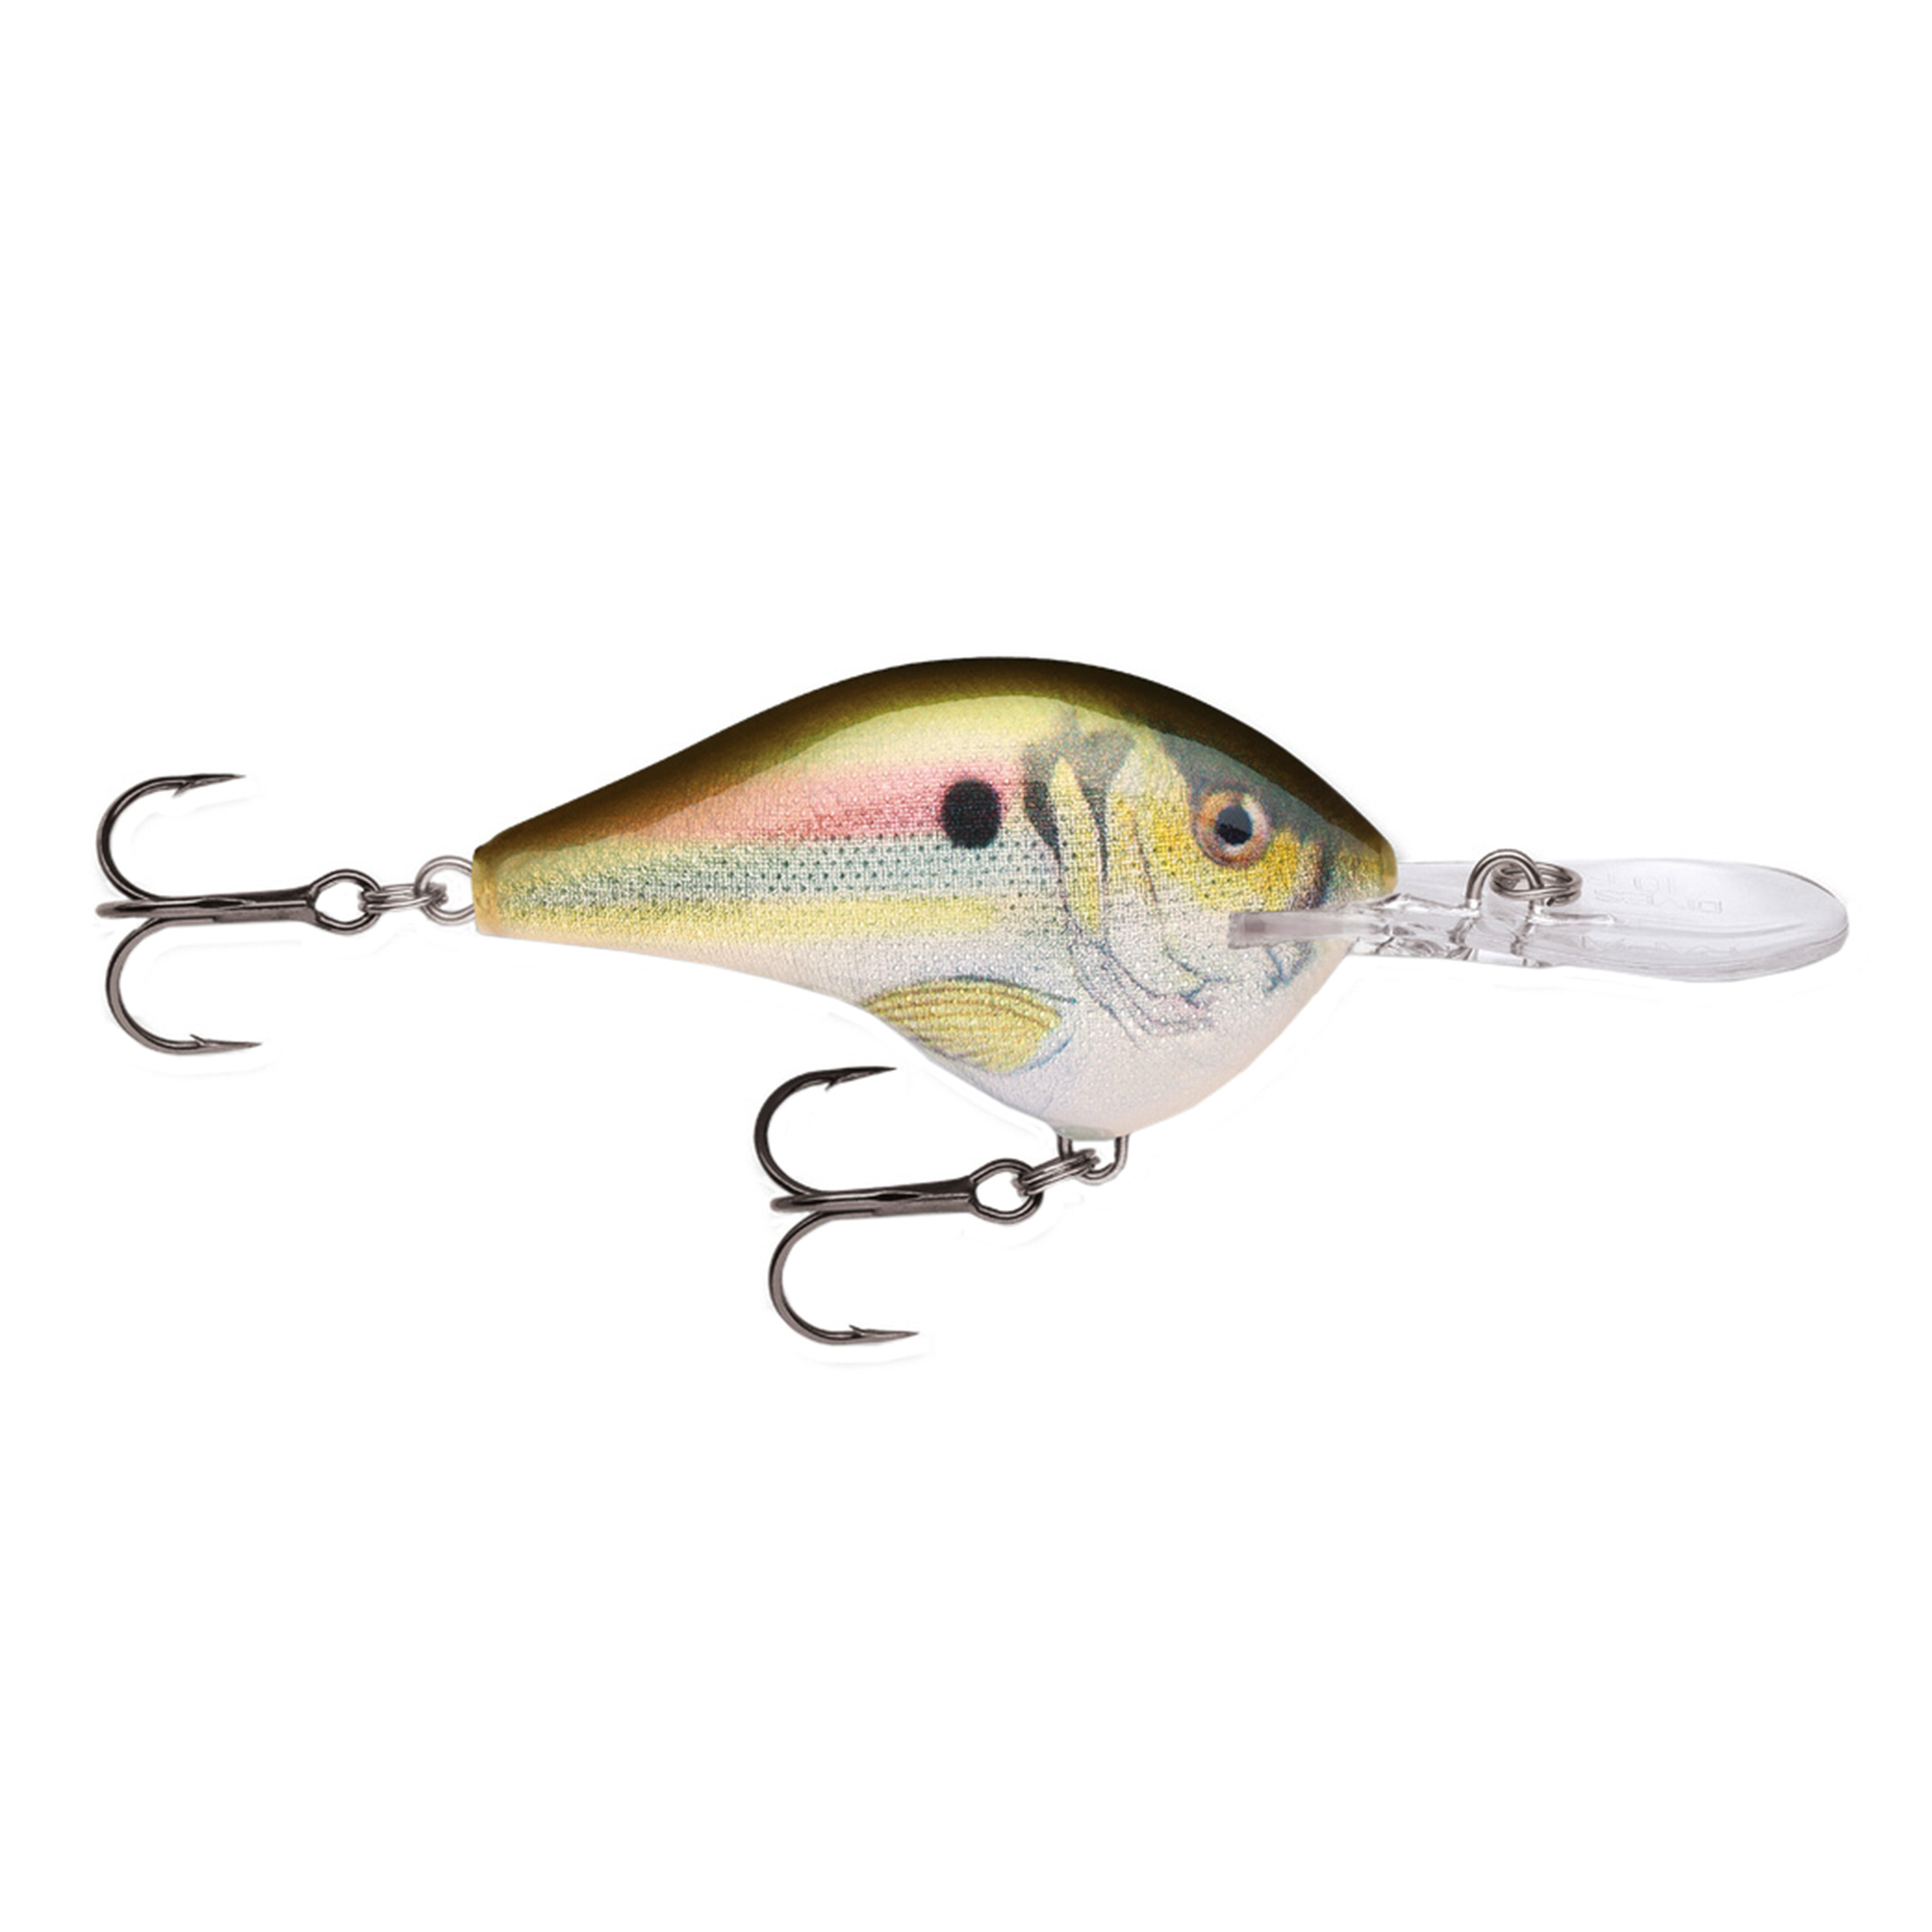 """Rapala Dives-To Series Custom Ink Lure Size 10, 2 1 4"""" Length 6' Depth 2 Number 4 Treble Hooks, Live River Shad, Per 1 by Rapala"""